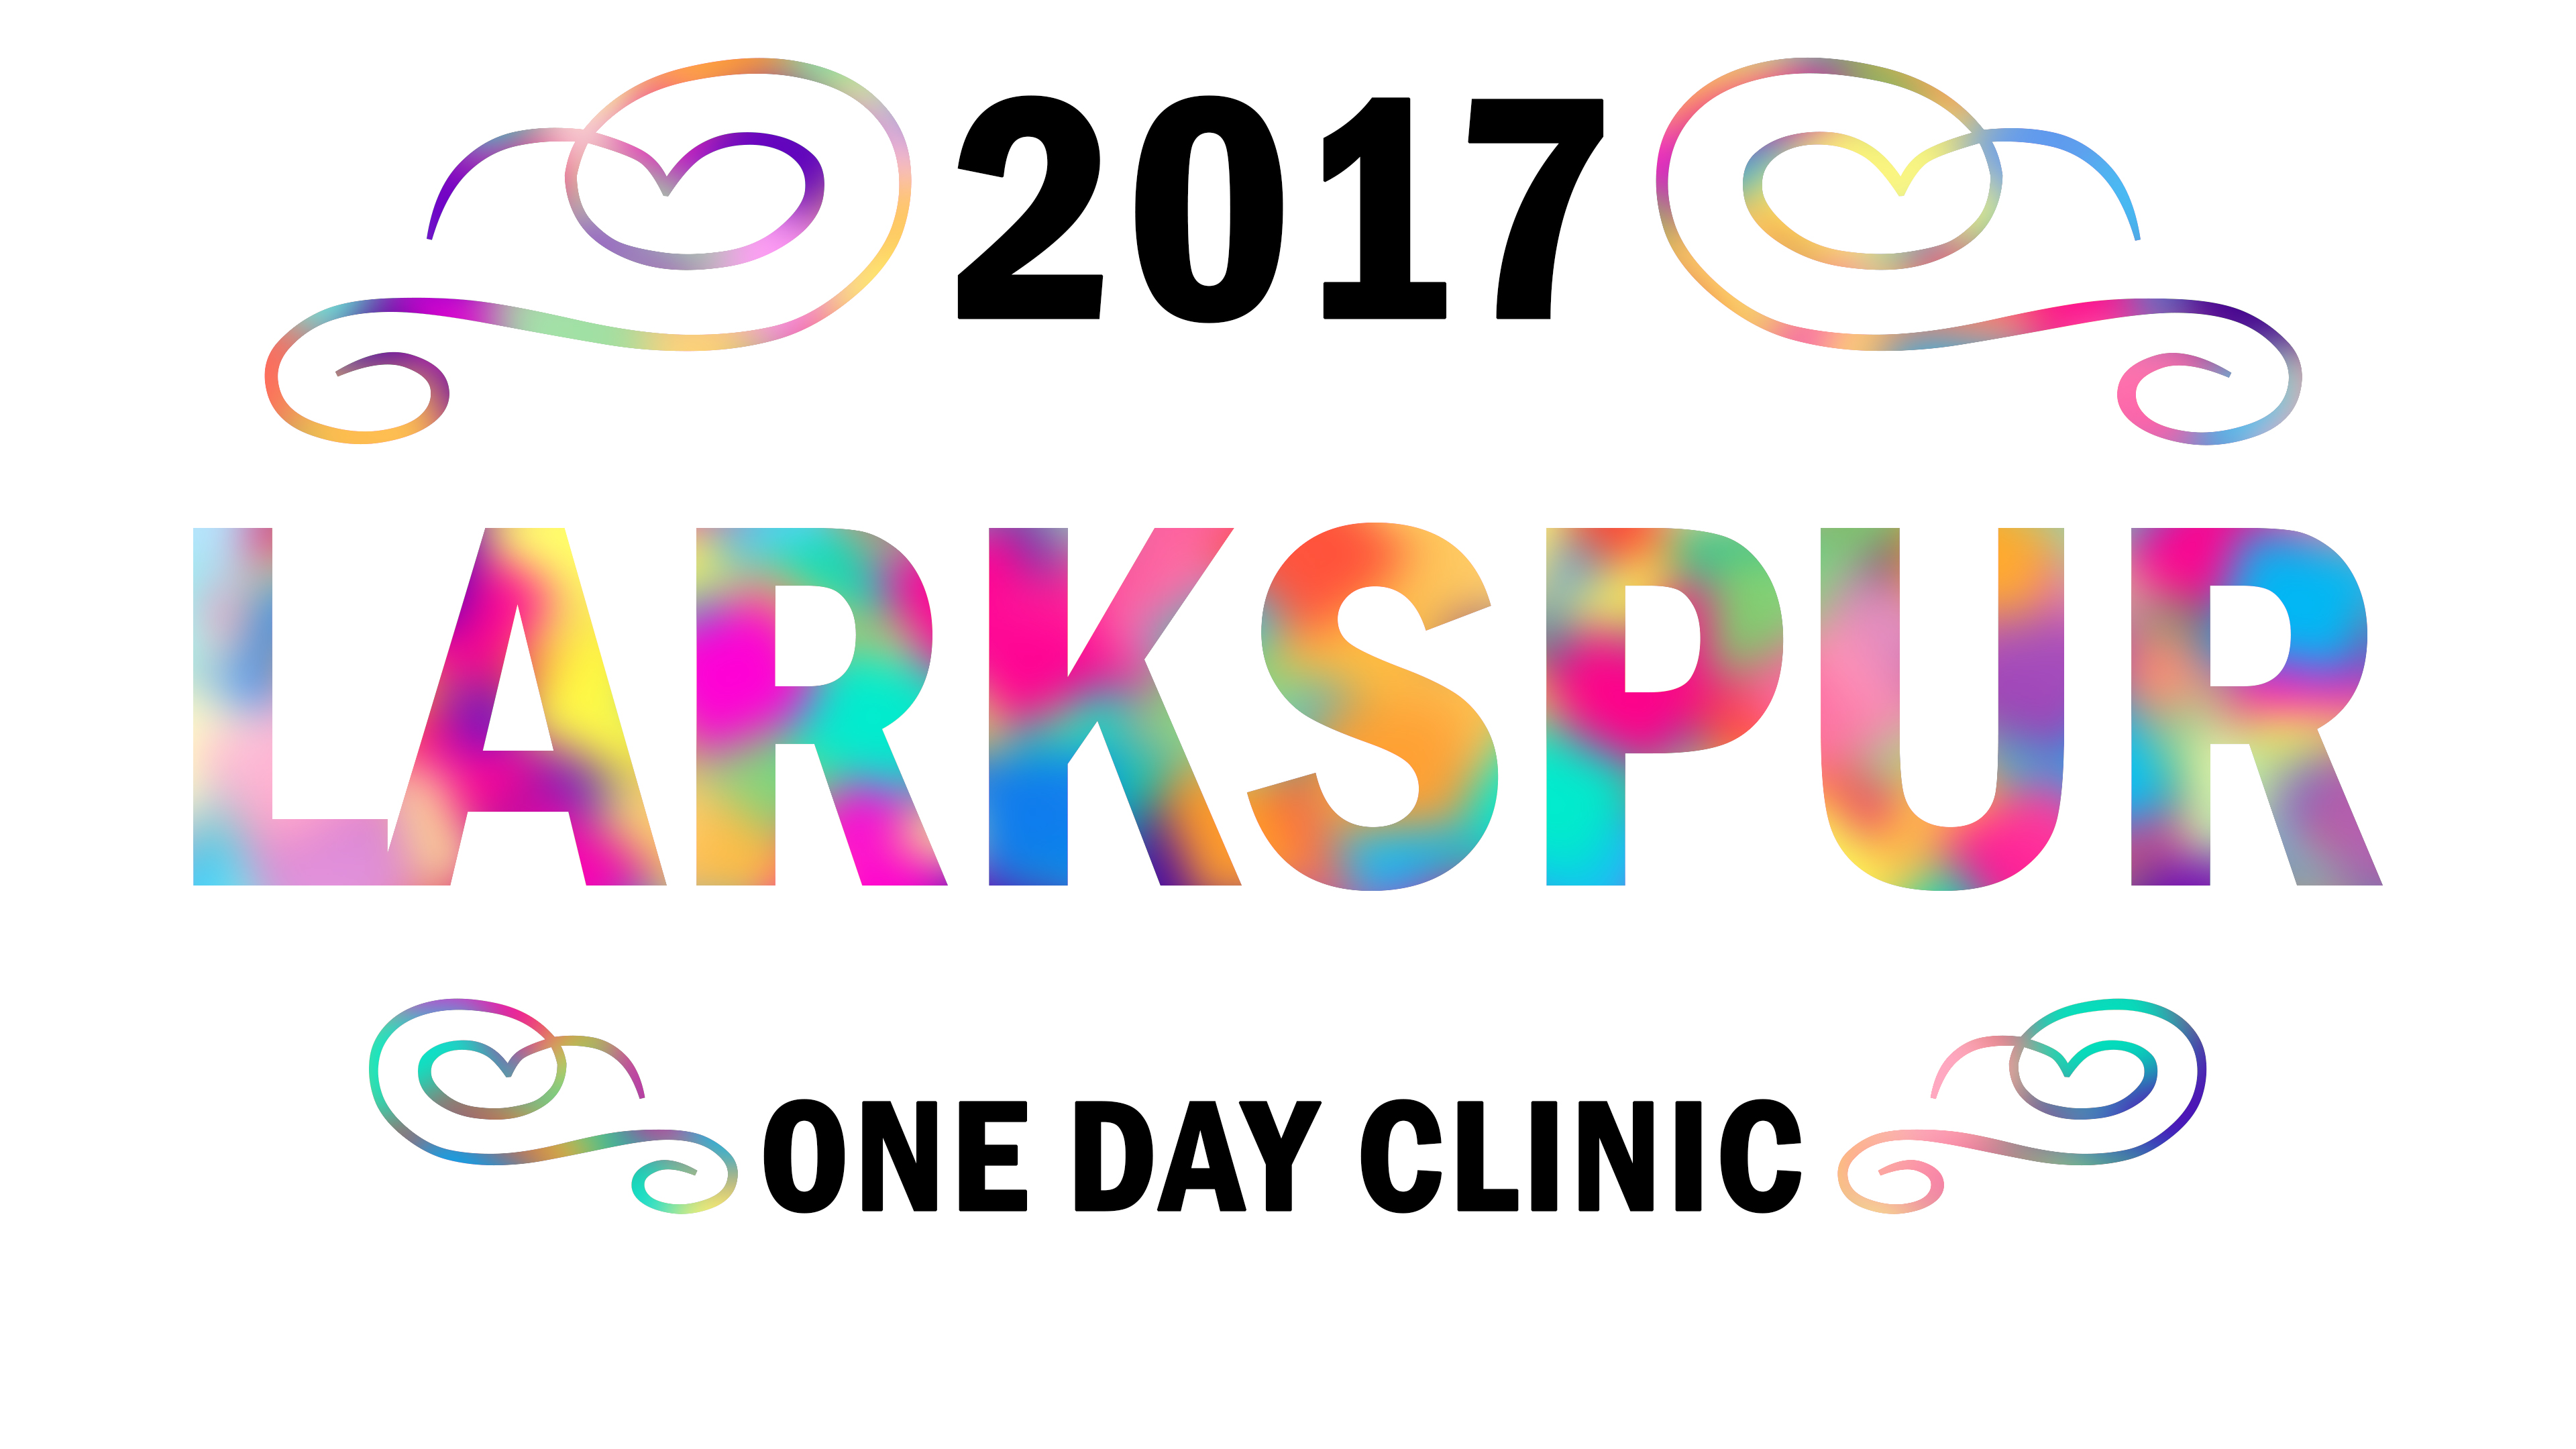 Marvelous We Had Our First 1 Day Clinic Last Summer And It Was Such A Success Weu0027re  Doing It Again! Hereu0027s A Quote From A Satisfied Coach Who Attended Last  Yearu0027s ...